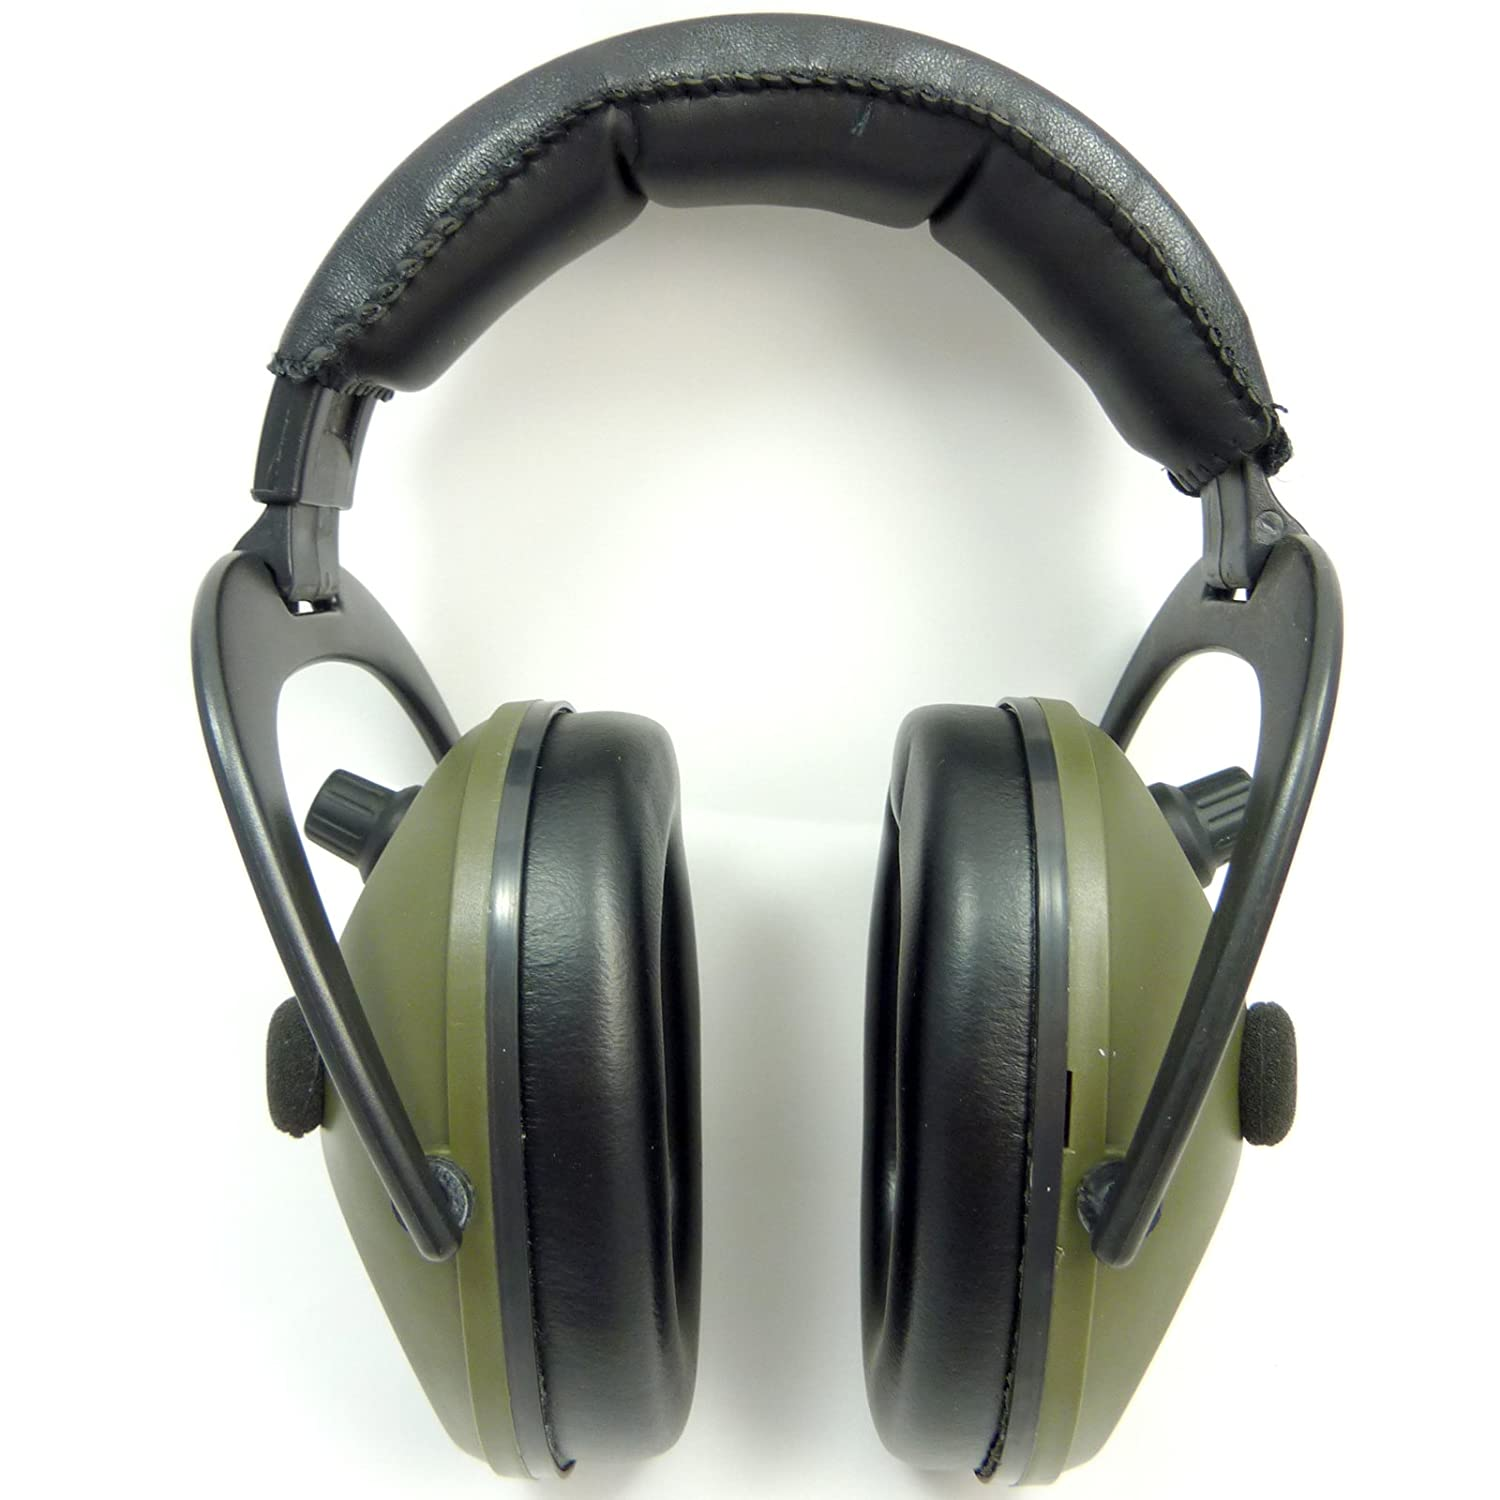 HEARPRO Hearing Protection / Electronic Ear Defenders for SHOOTING RIFLE CLAY (27dB SNR) Stands Out Ltd